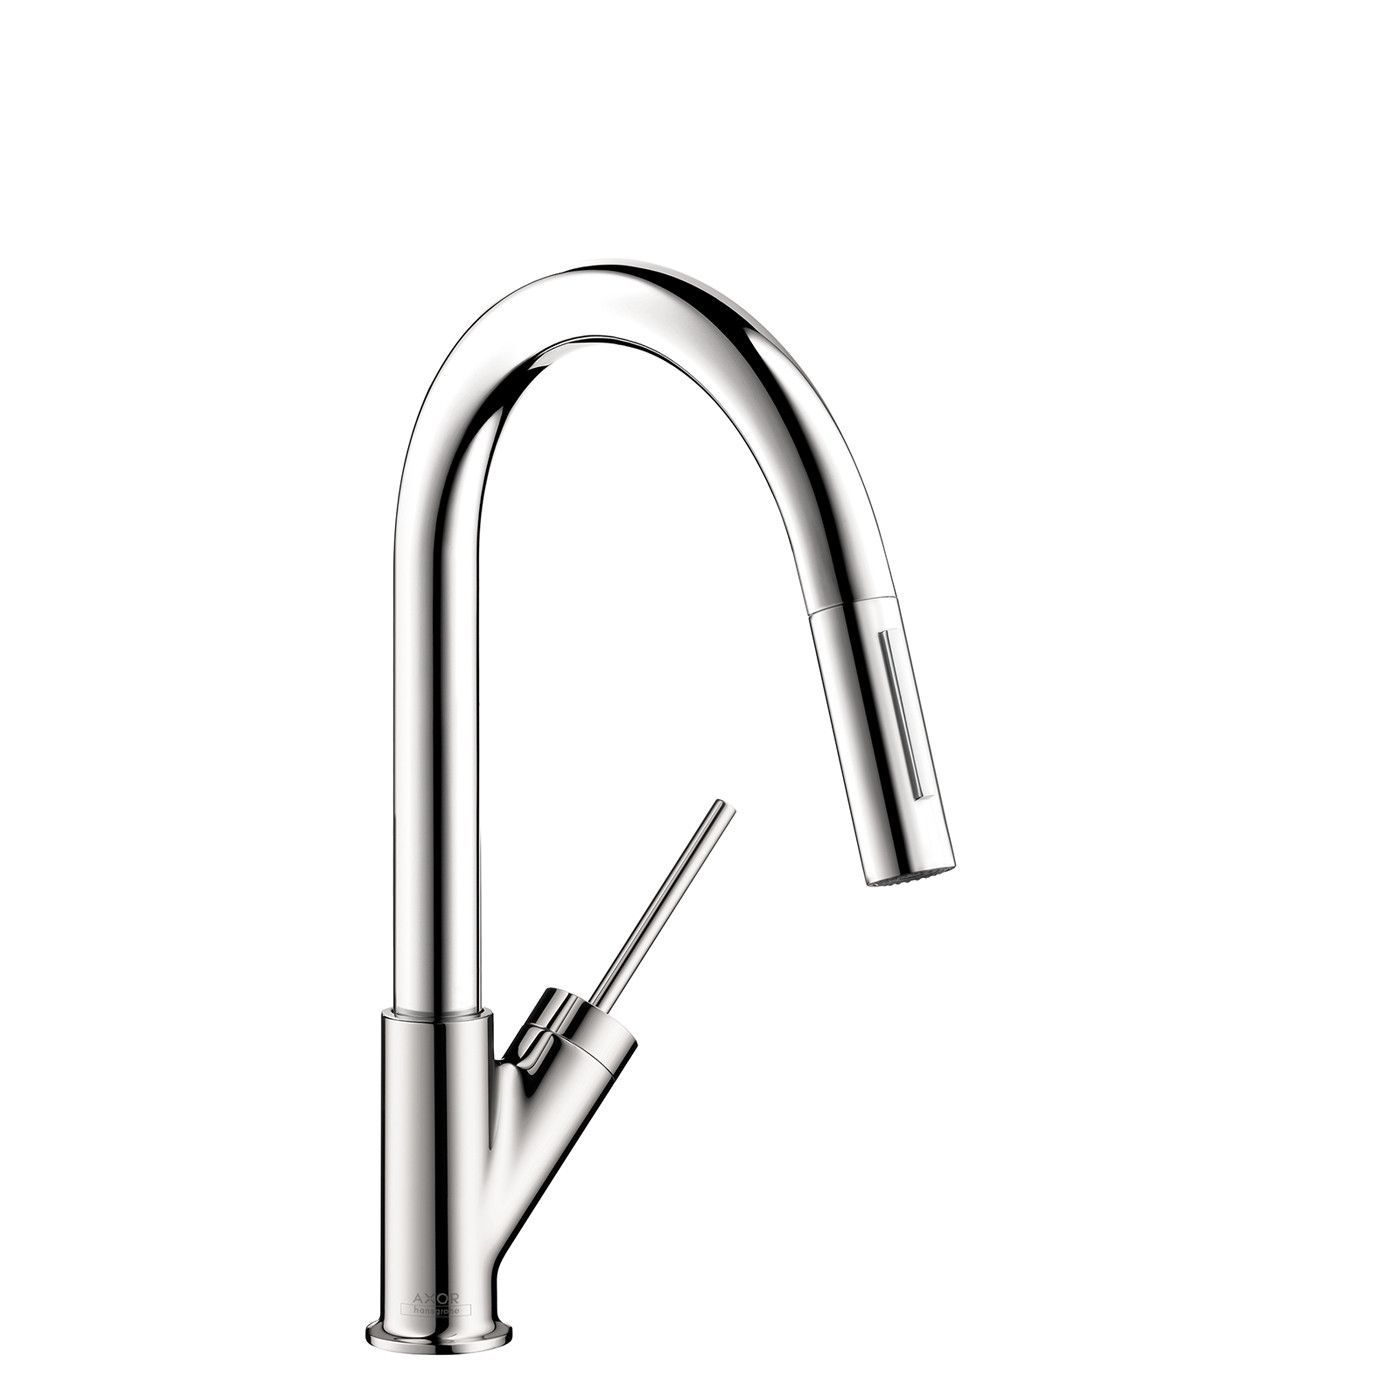 Hansgrohe Axor 10824001 Chrome Starck Pull-Down Kitchen Faucet with ...